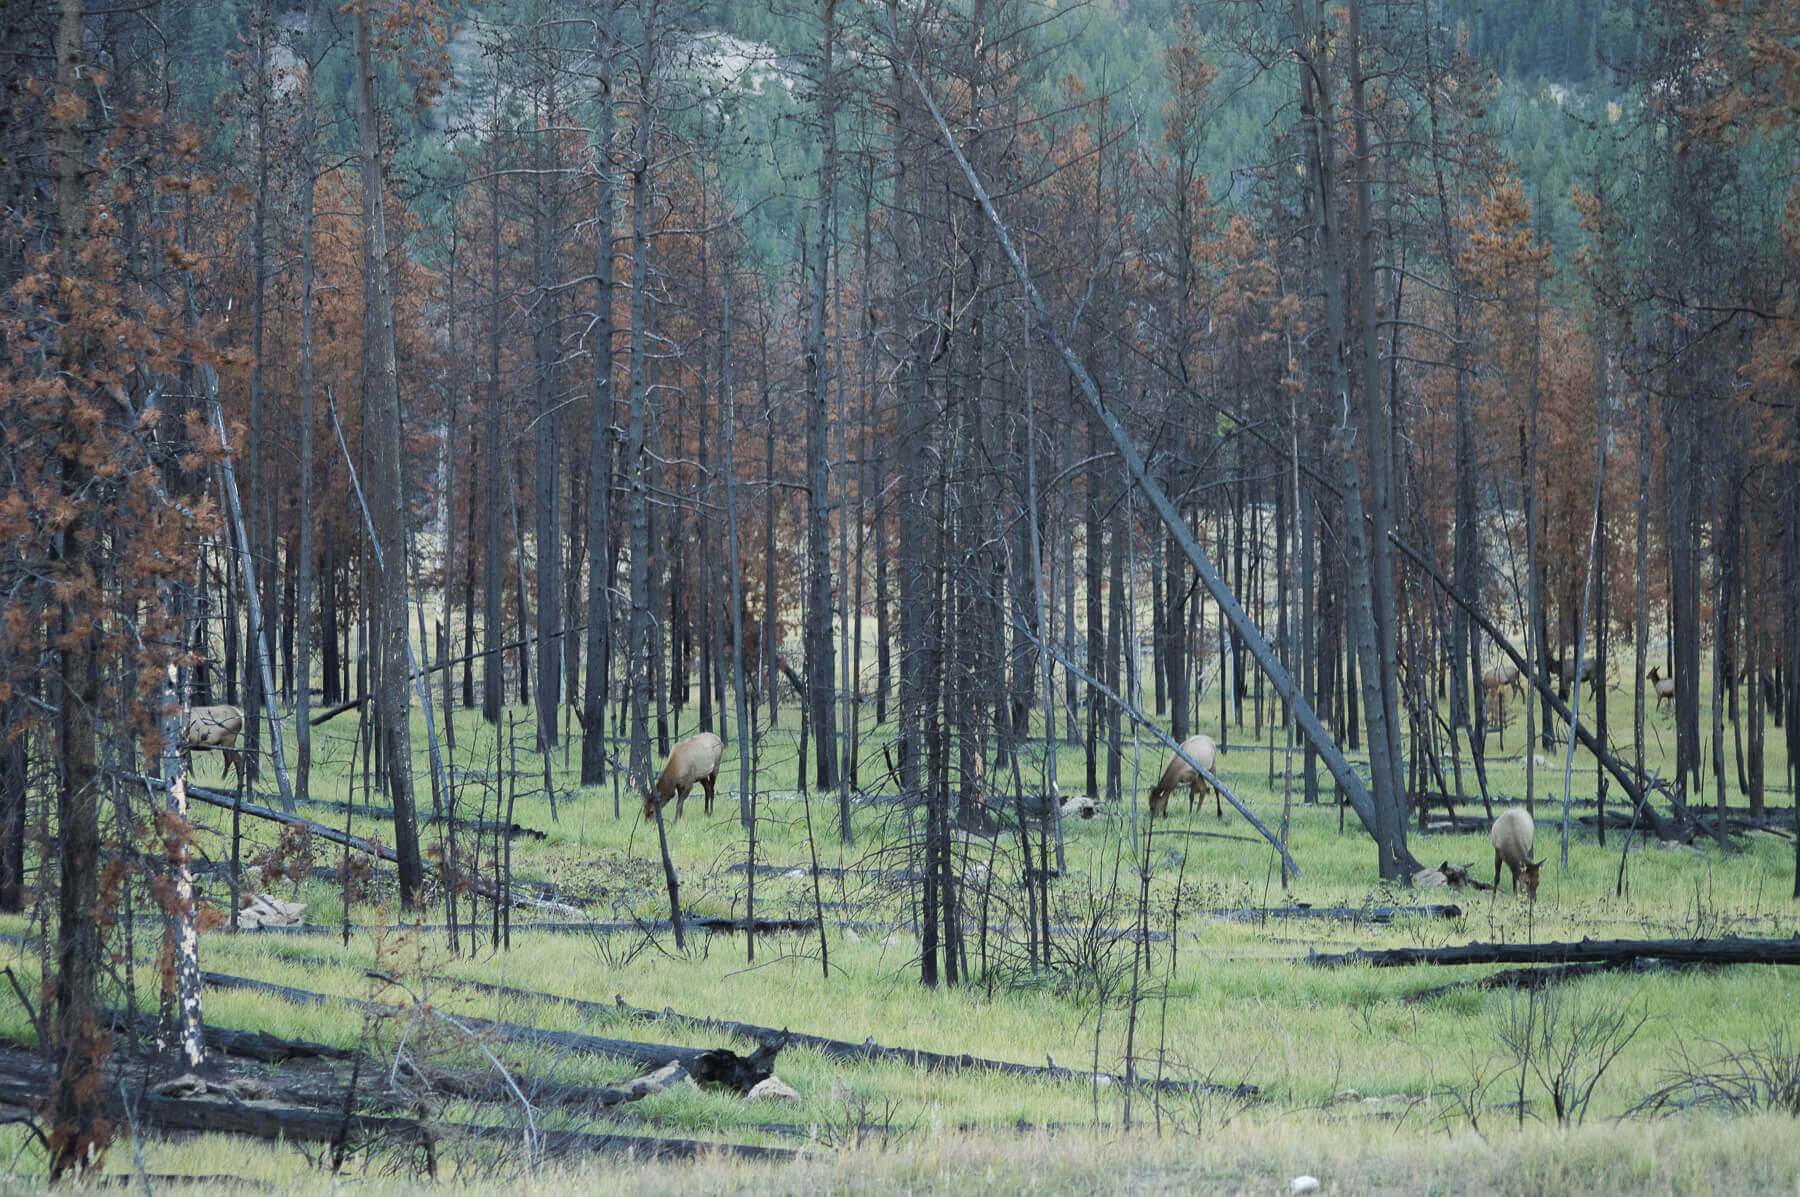 A gang of elk grazing around a group of burnt trees